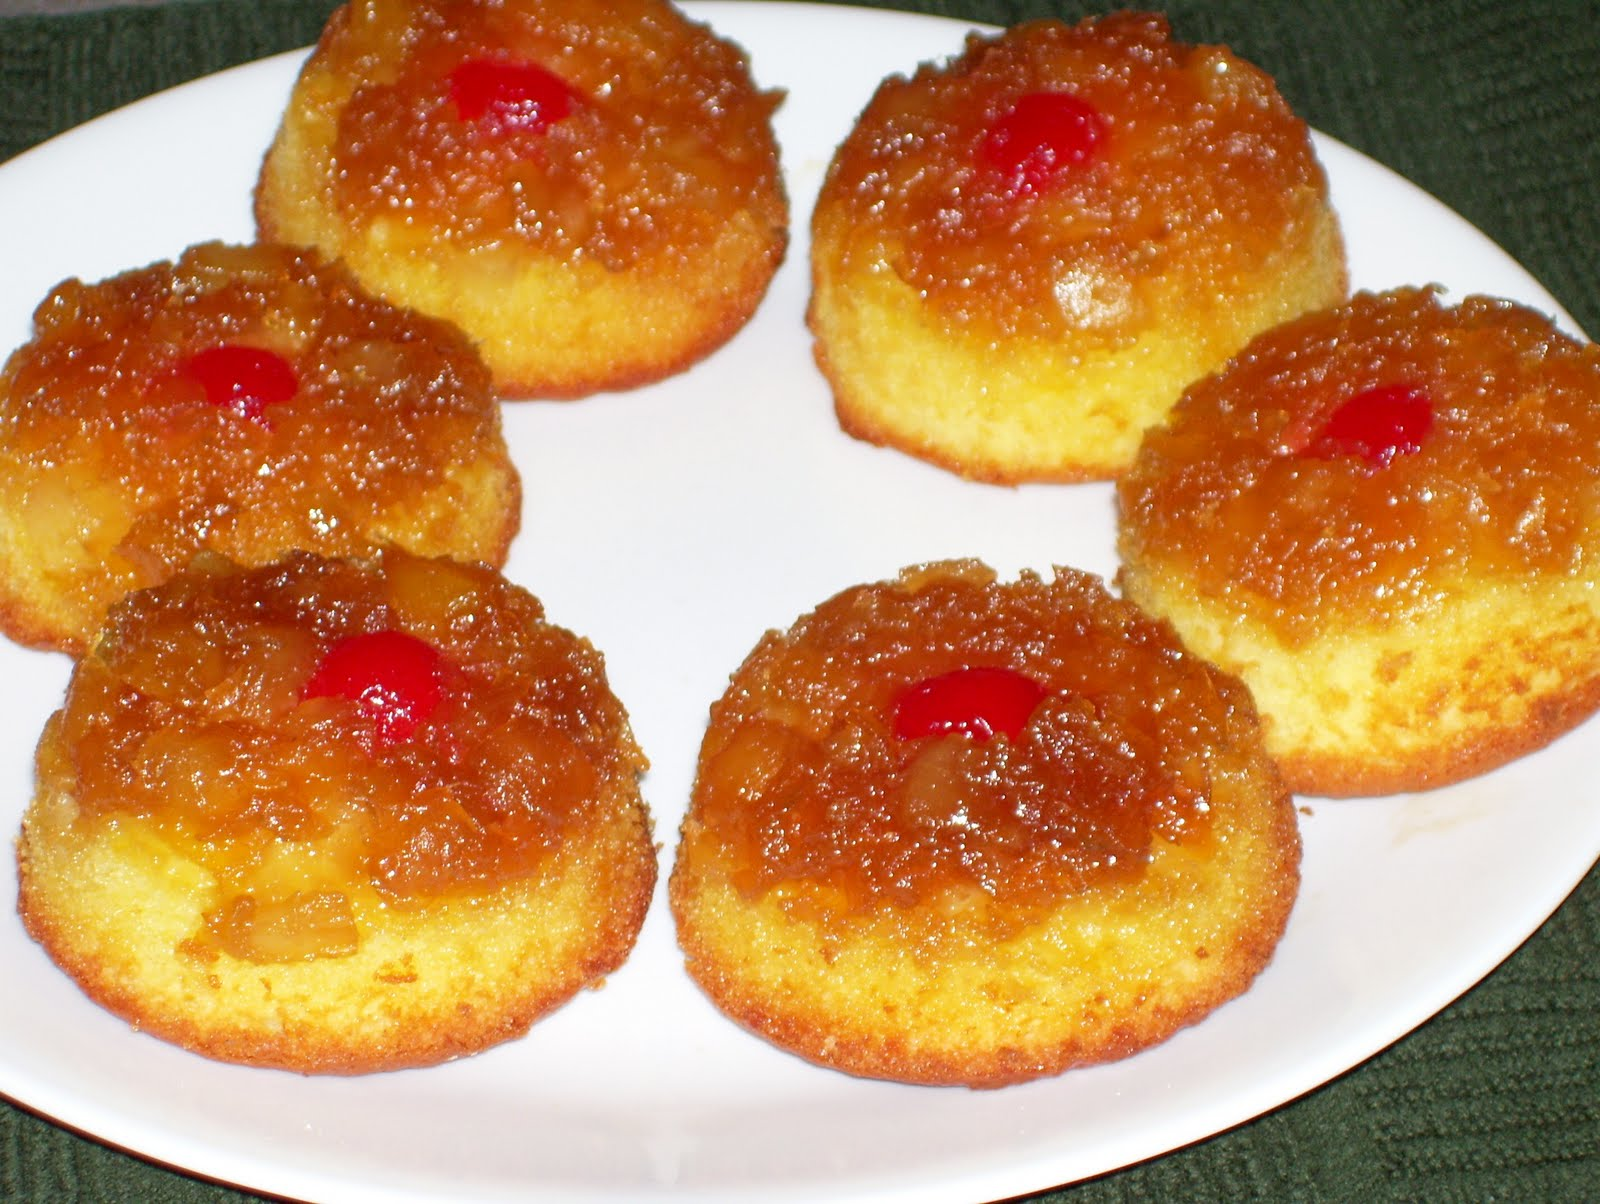 Pineapple Upside Down Cake Recipe Using Jiffy Cake Mix